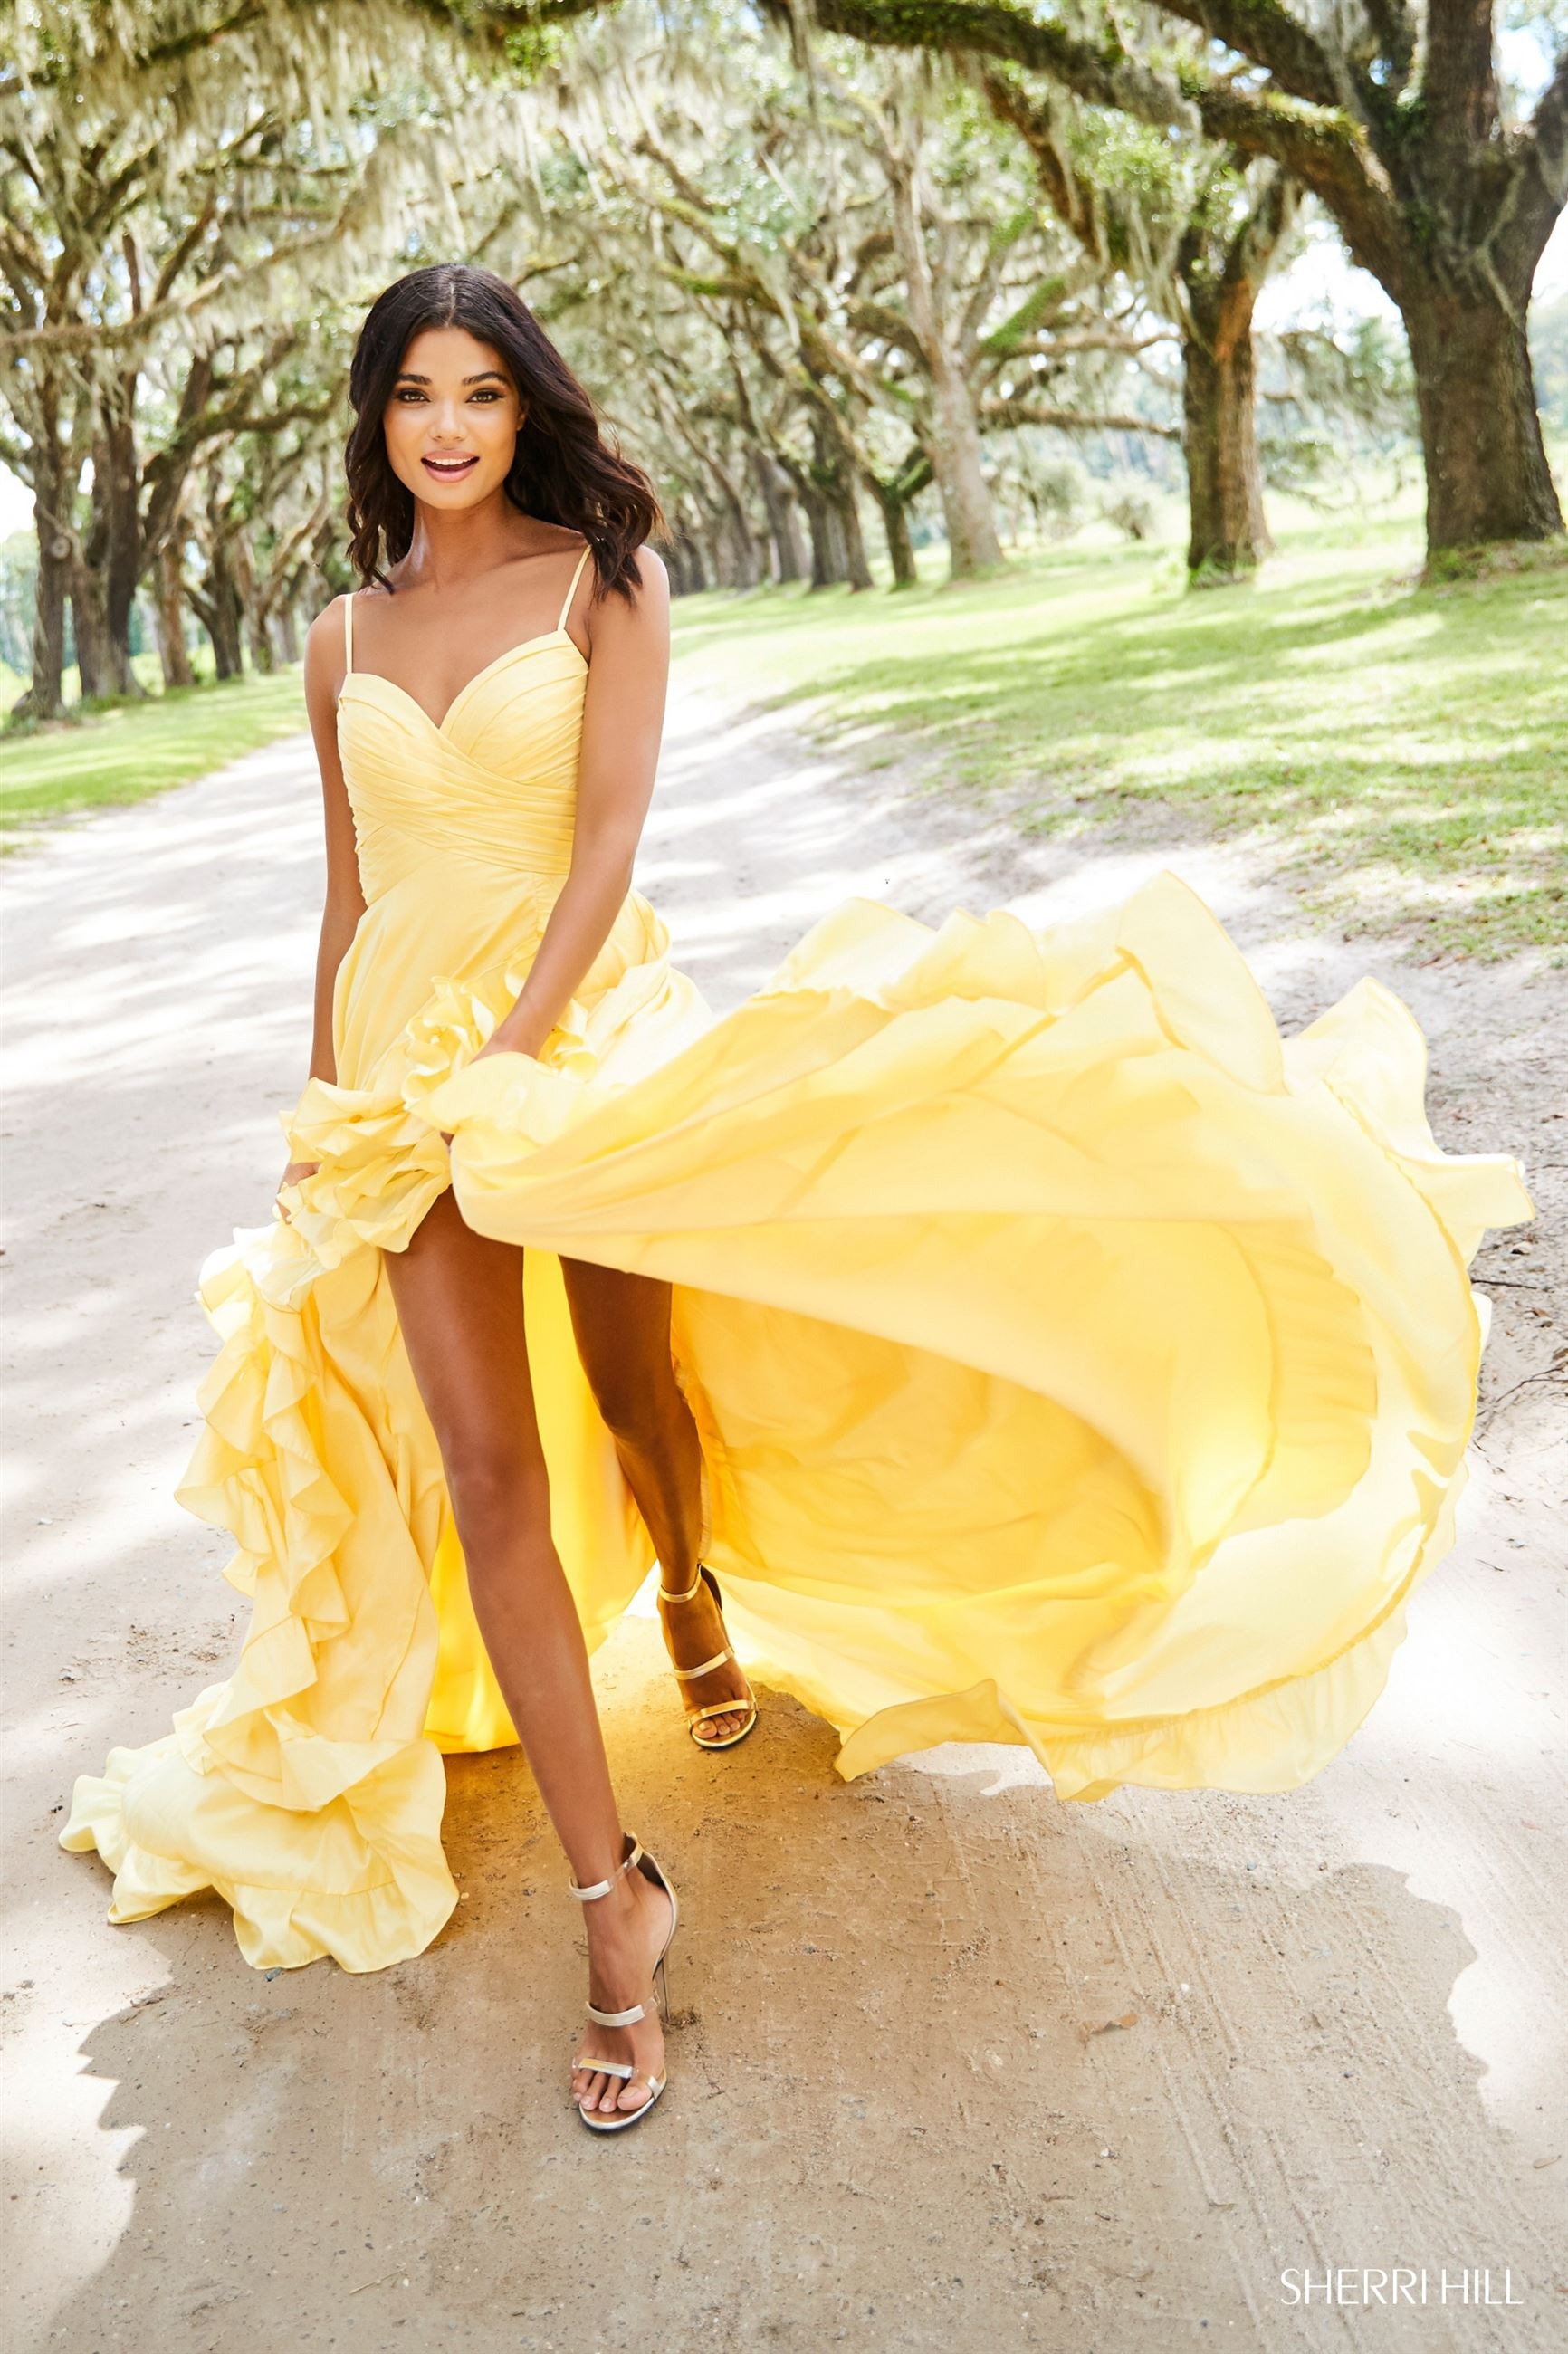 sherri hill yellow prom dress spring 2019 chantilly lace bridals blacksburg virginia